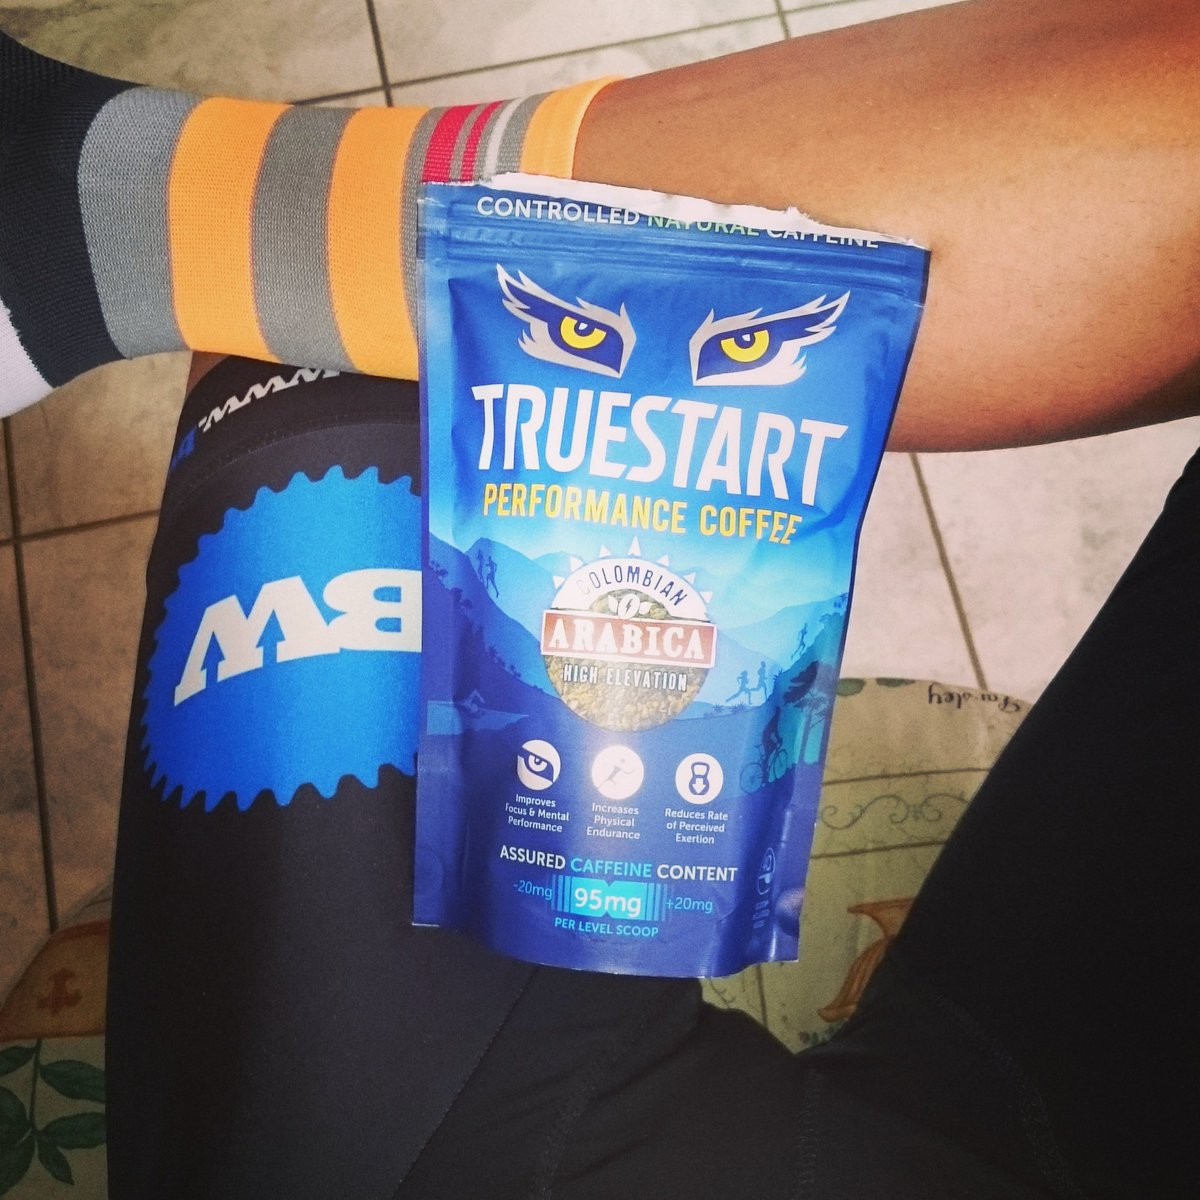 RT @BrettHalliwell: 8 of these little beauties should see me fuelled for quite a while 👌 #Teamtruestart https://t.co/PbuJFX1fFY